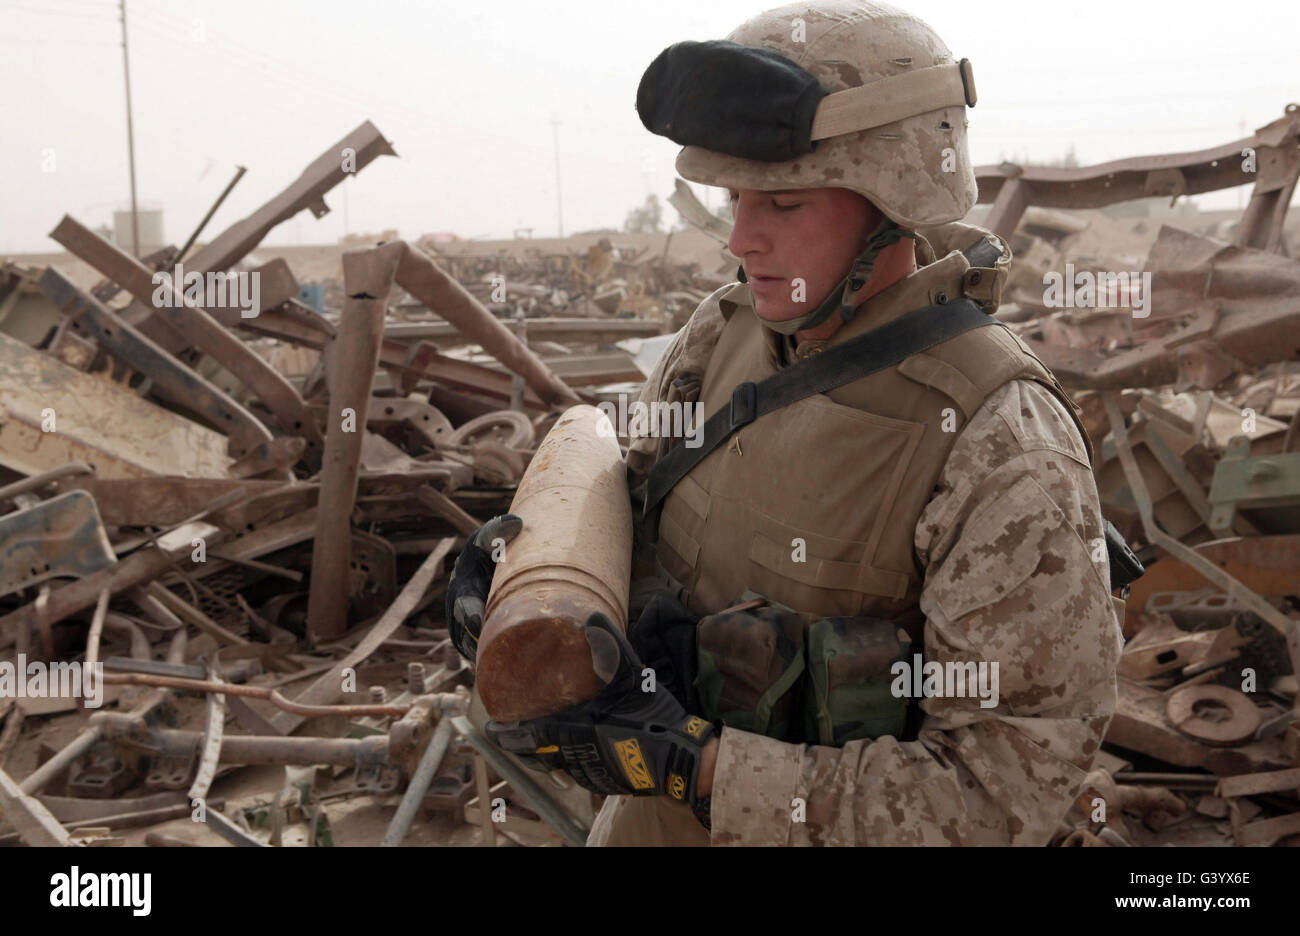 A soldier carries an unused 155 millimeter artillery round. - Stock Image